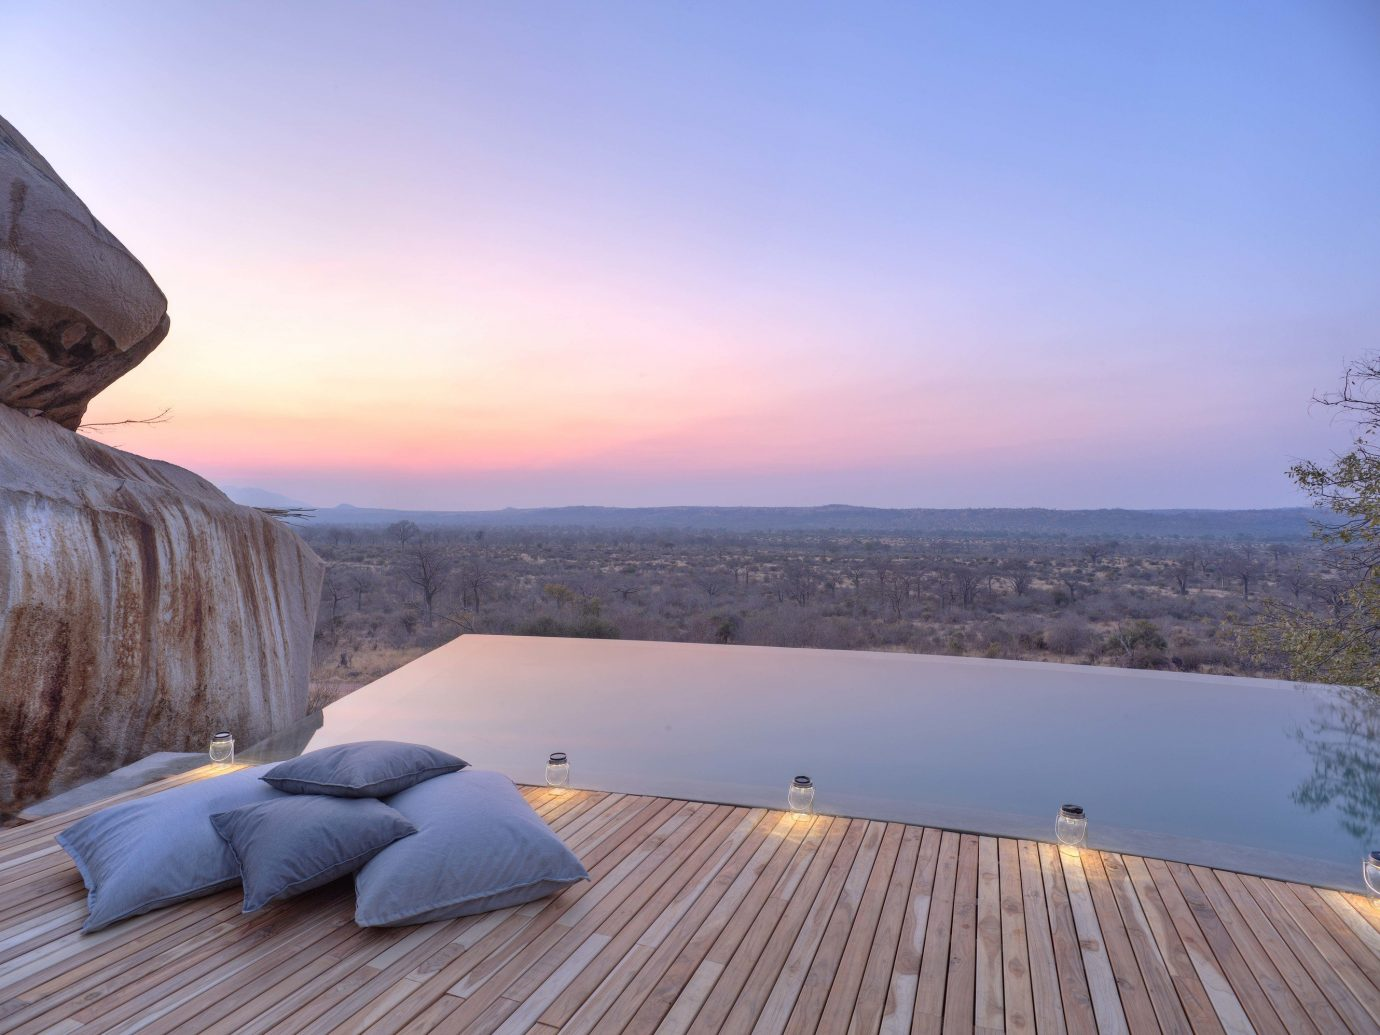 Architecture Fall Travel Hotels Luxury Travel News Trip Ideas sky outdoor morning Nature wood horizon reflection real estate cloud landscape evening